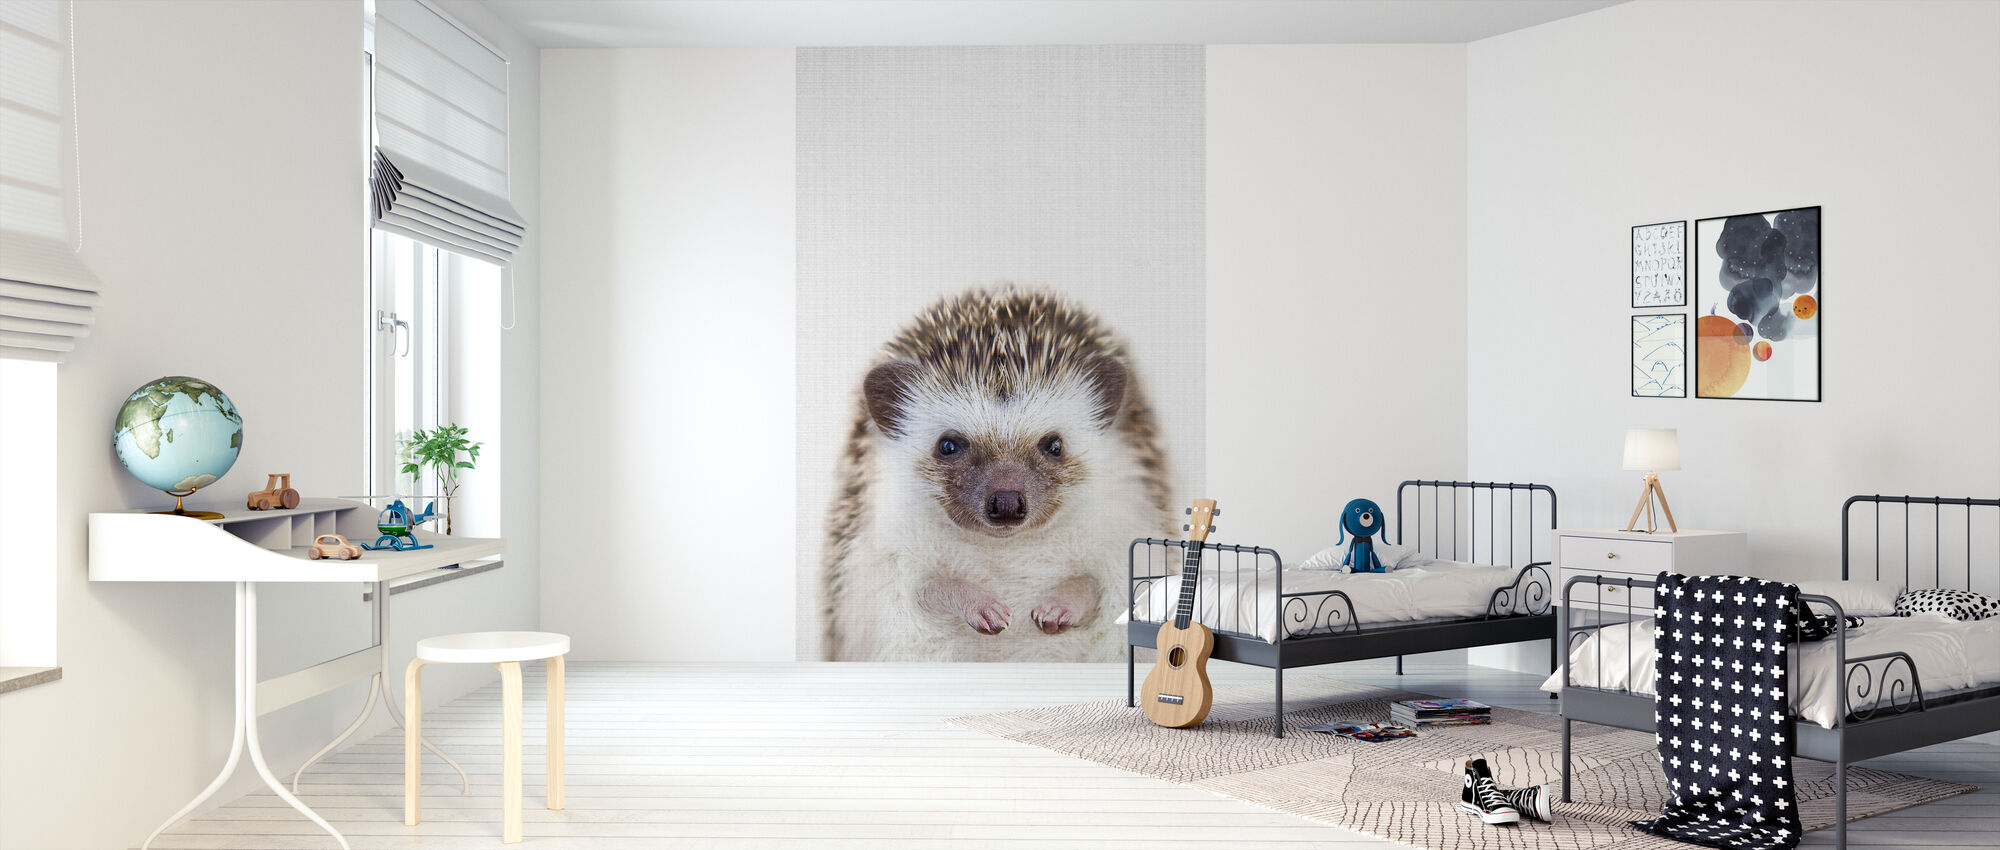 Hedgehog - Wallpaper - Kids Room